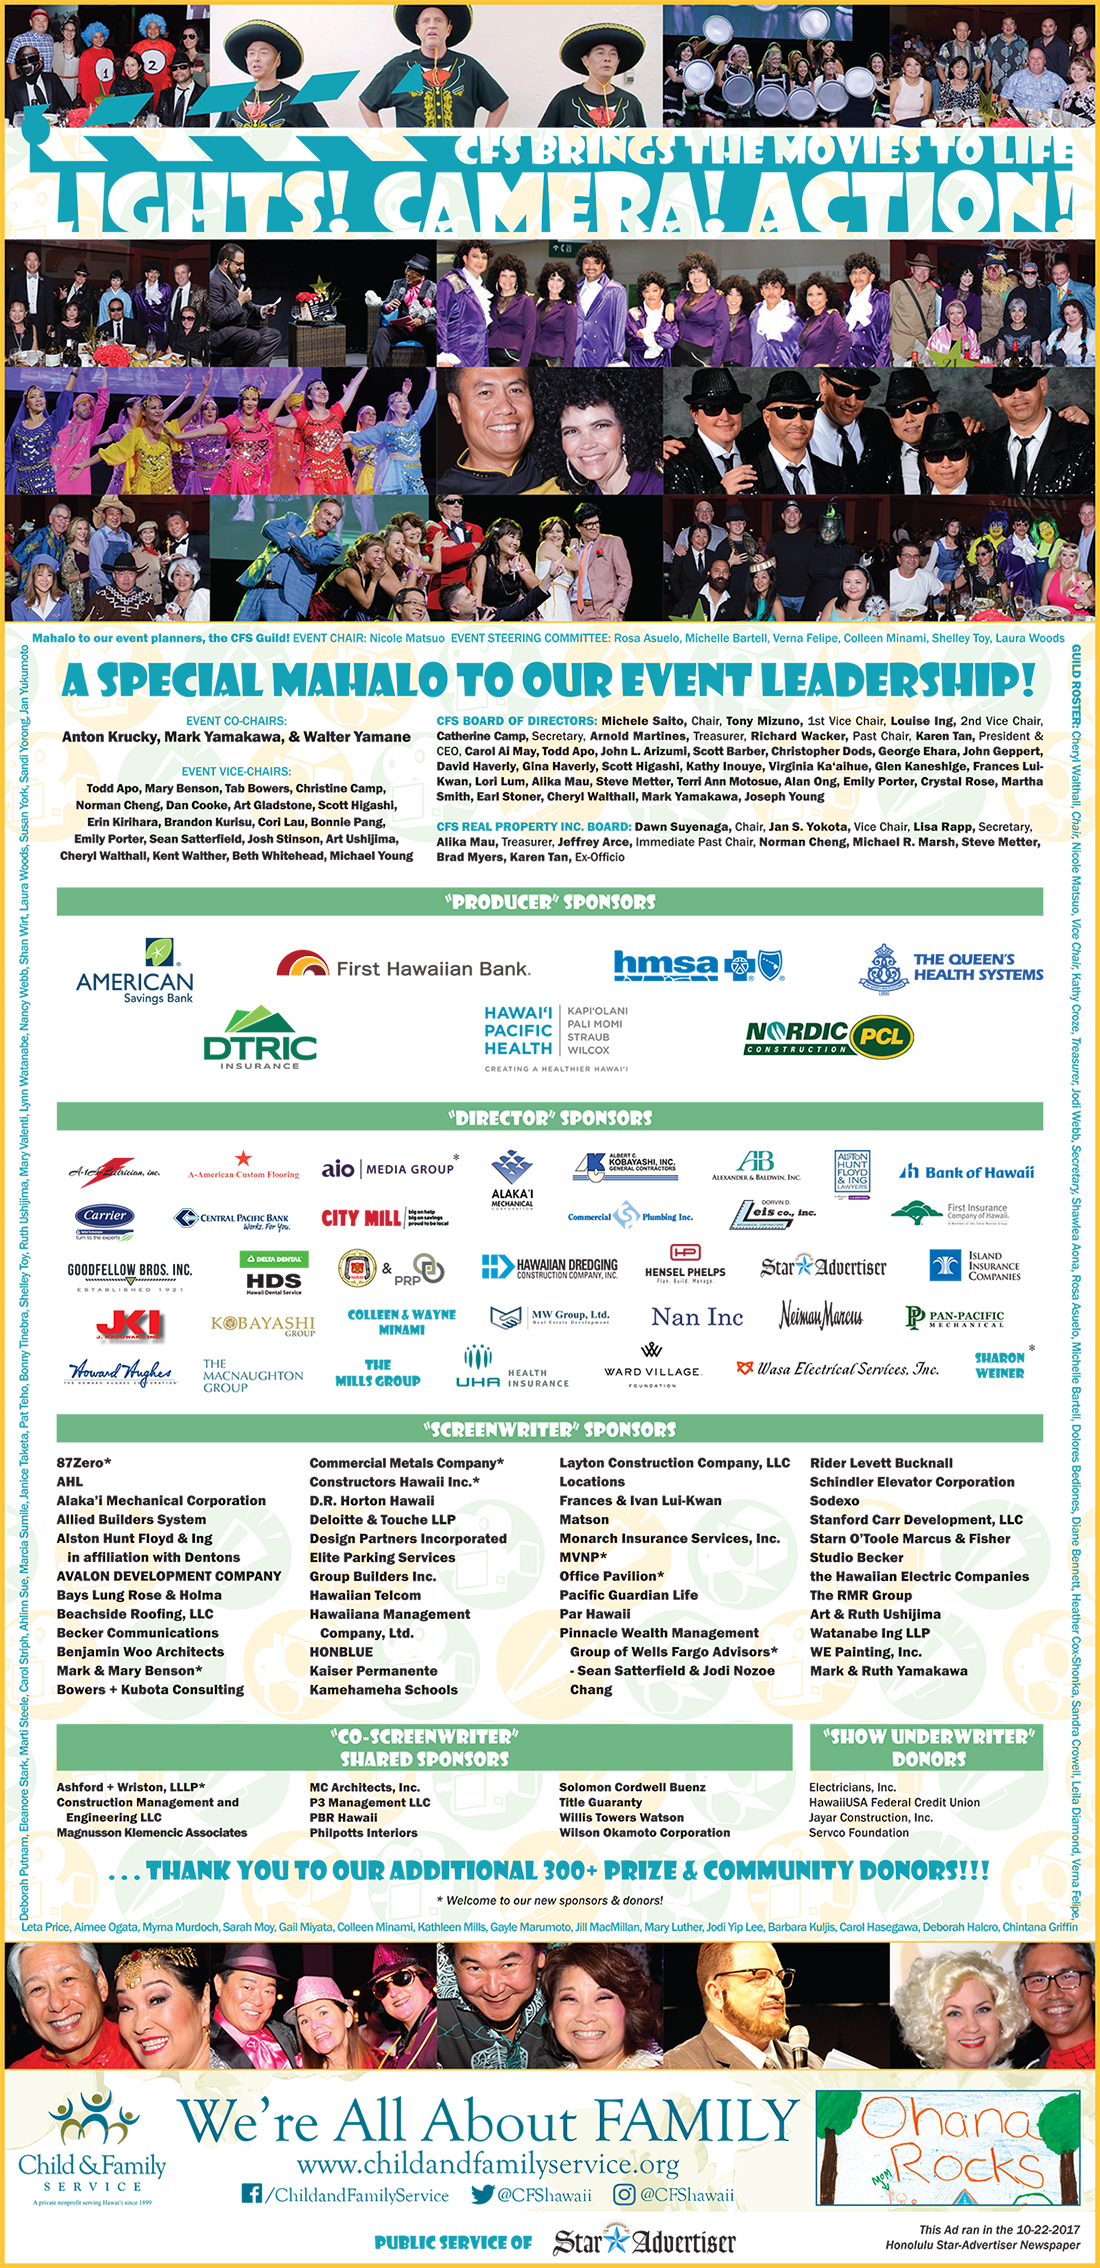 2017 LIGHTS! CAMERA! ACTION! CFS Brings the Movies to Life Mahalo Ad: appeared in the Honolulu Star-Advertiser on 10/22/2017.